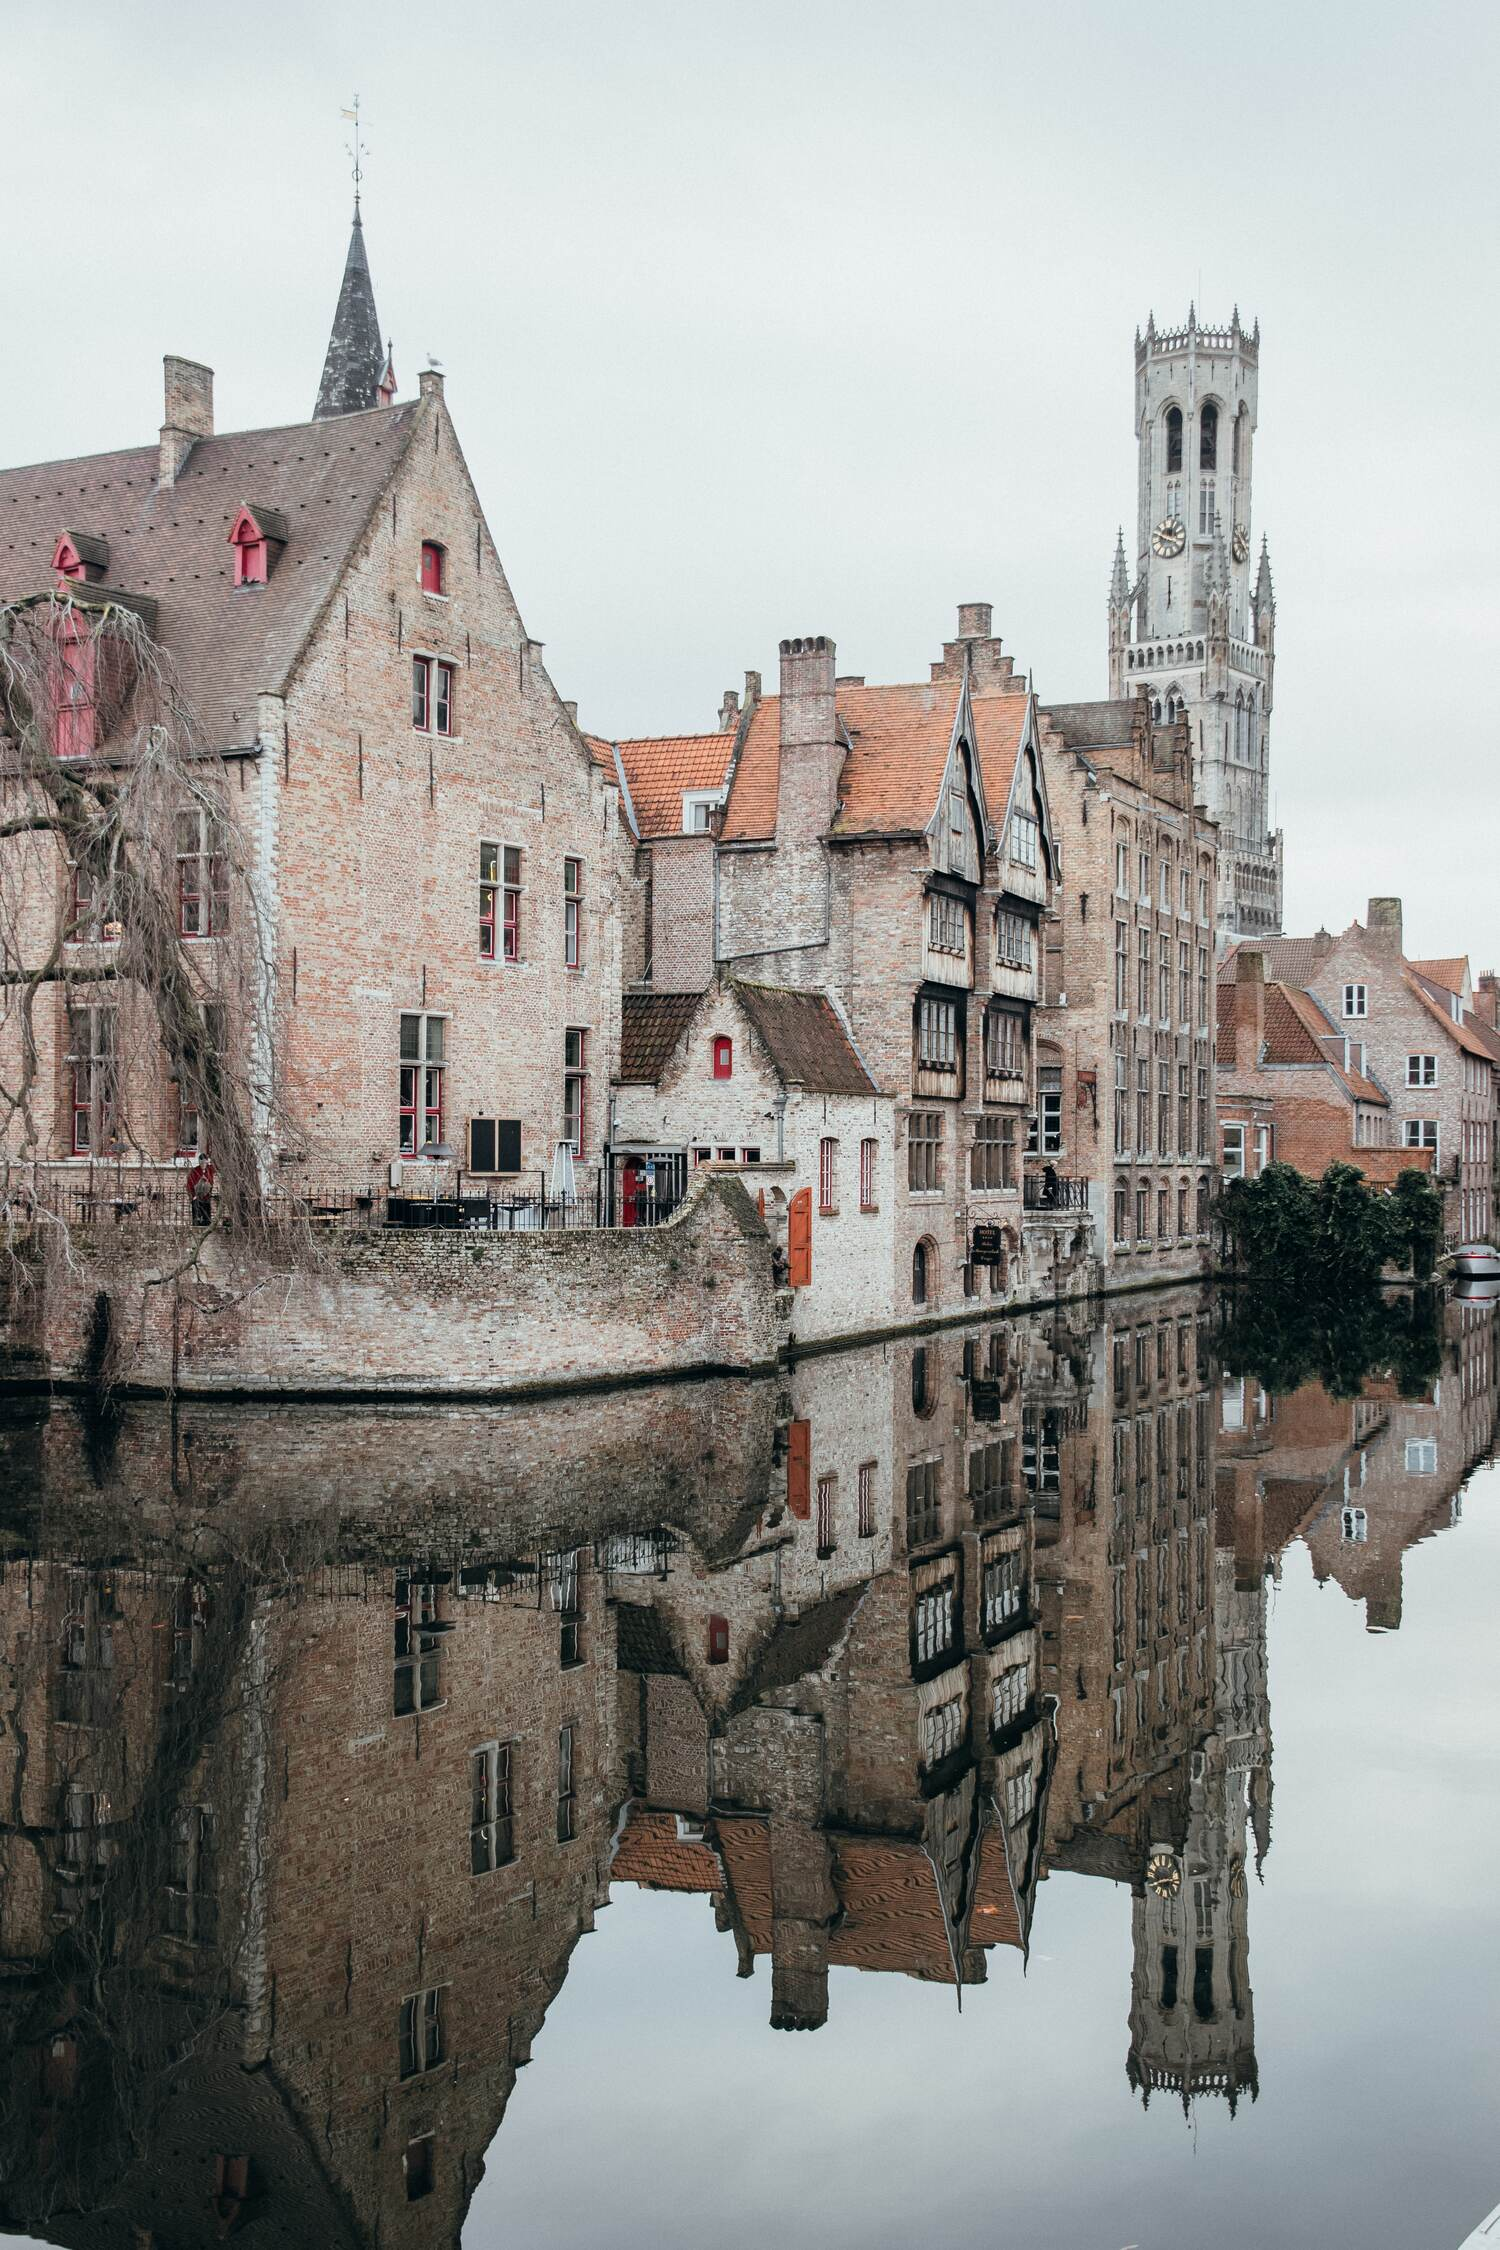 The Rozenhoedkaai which features the hotel from In Bruges